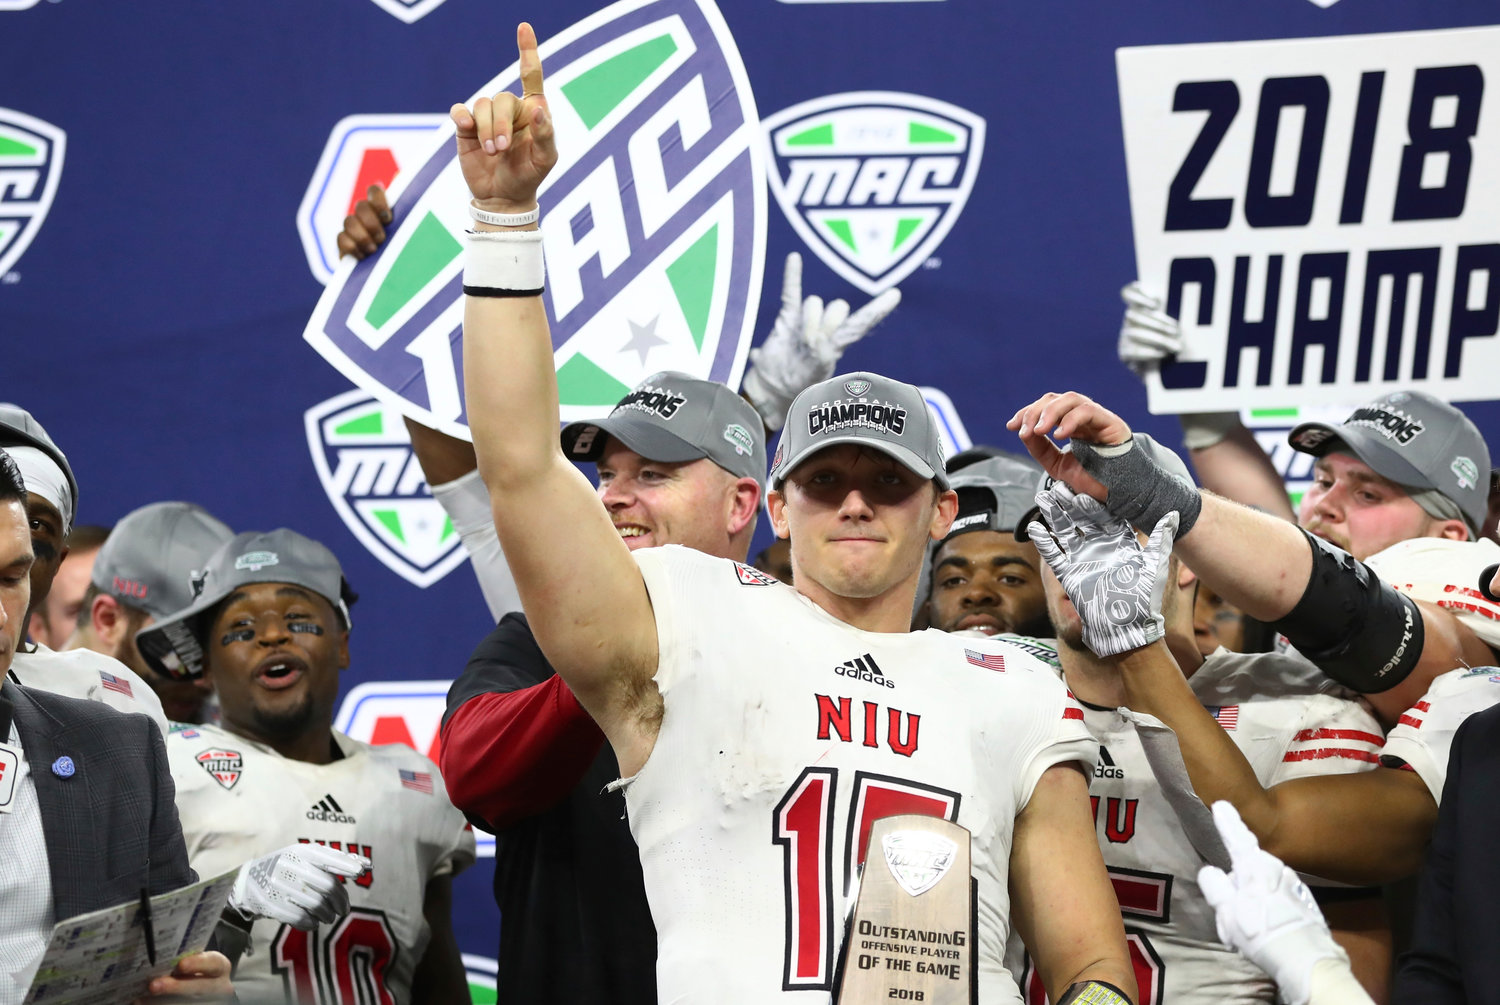 Northern Illinois quarterback Marcus Childers, holding the MAC Championship outstanding offensive player of the game trophy, points to the crowd after leading NIU to a come-from-behind victory in the conference championship game against Buffalo Friday in Detroit.